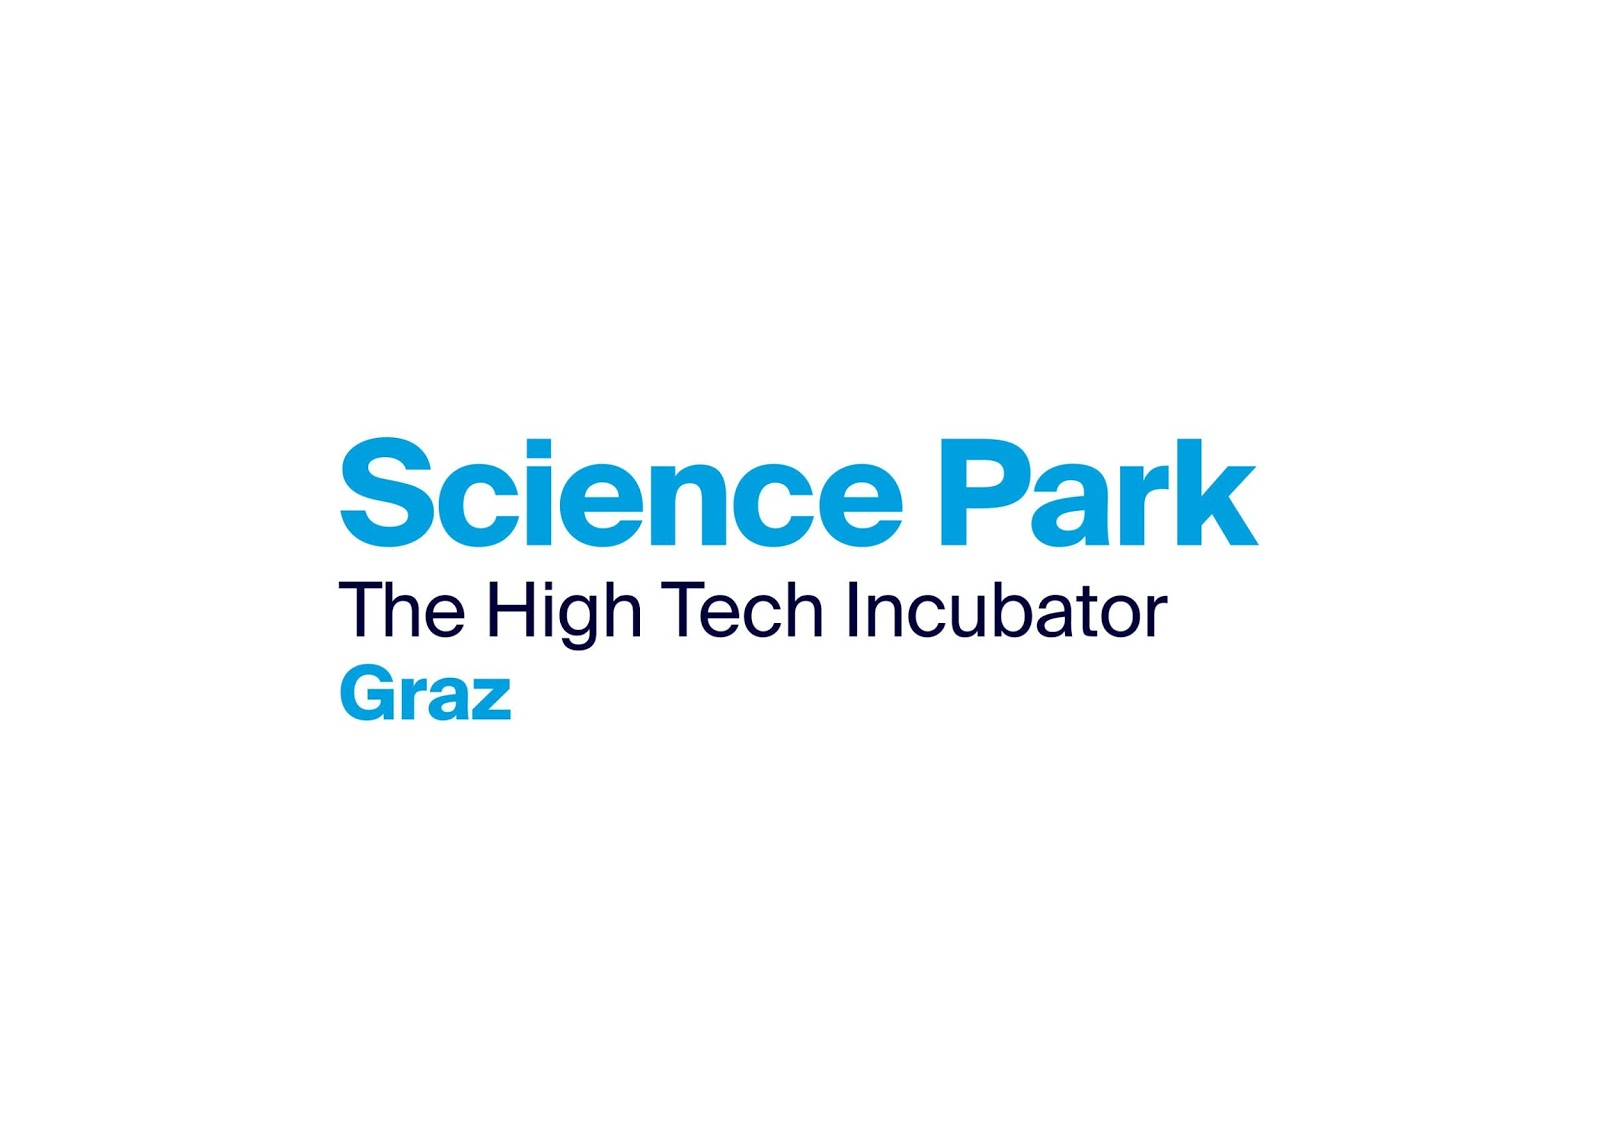 https://www.sciencepark.at/de/start/